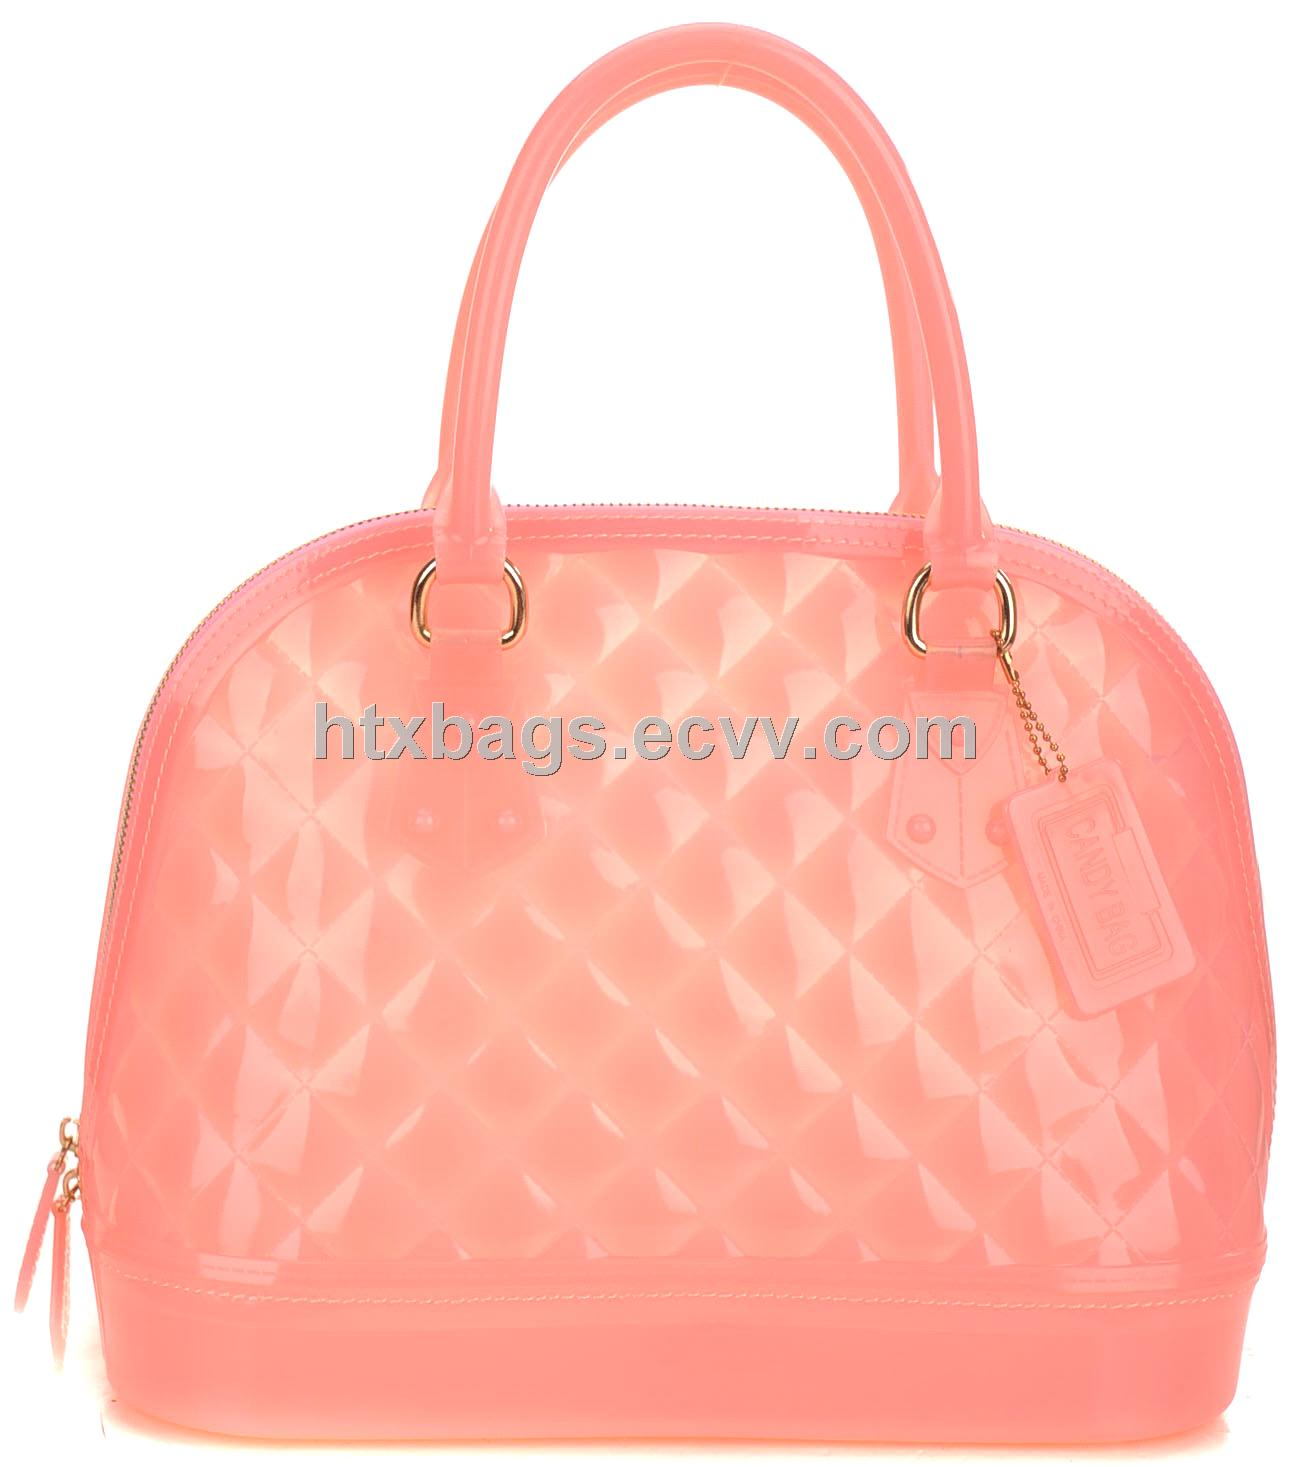 Trendy Pvc Bag Made In China Yx006